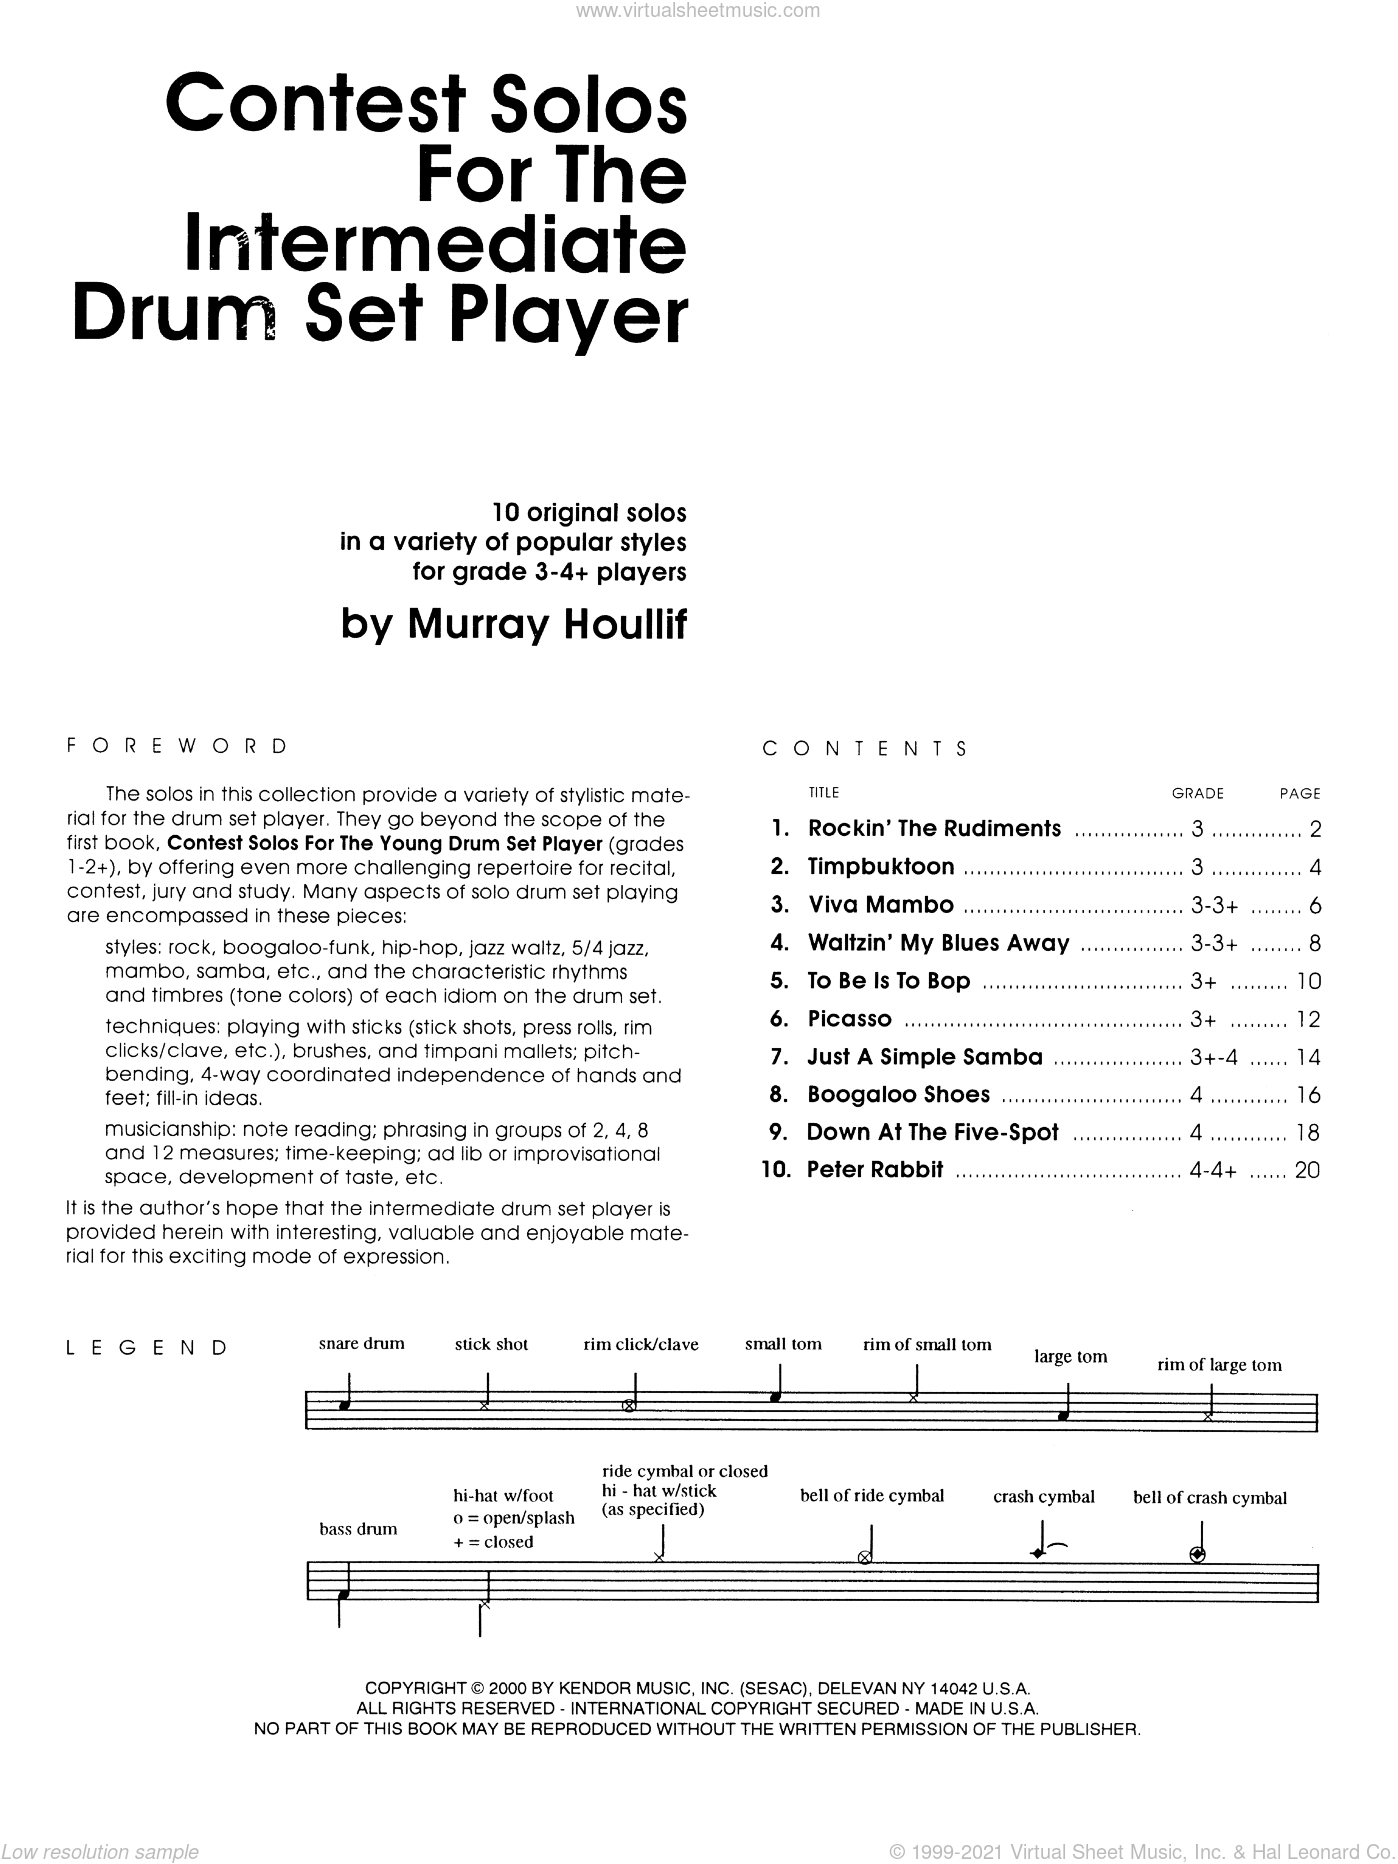 Contest Solos For The Intermediate Drum Set Player sheet music for percussions by Houllif